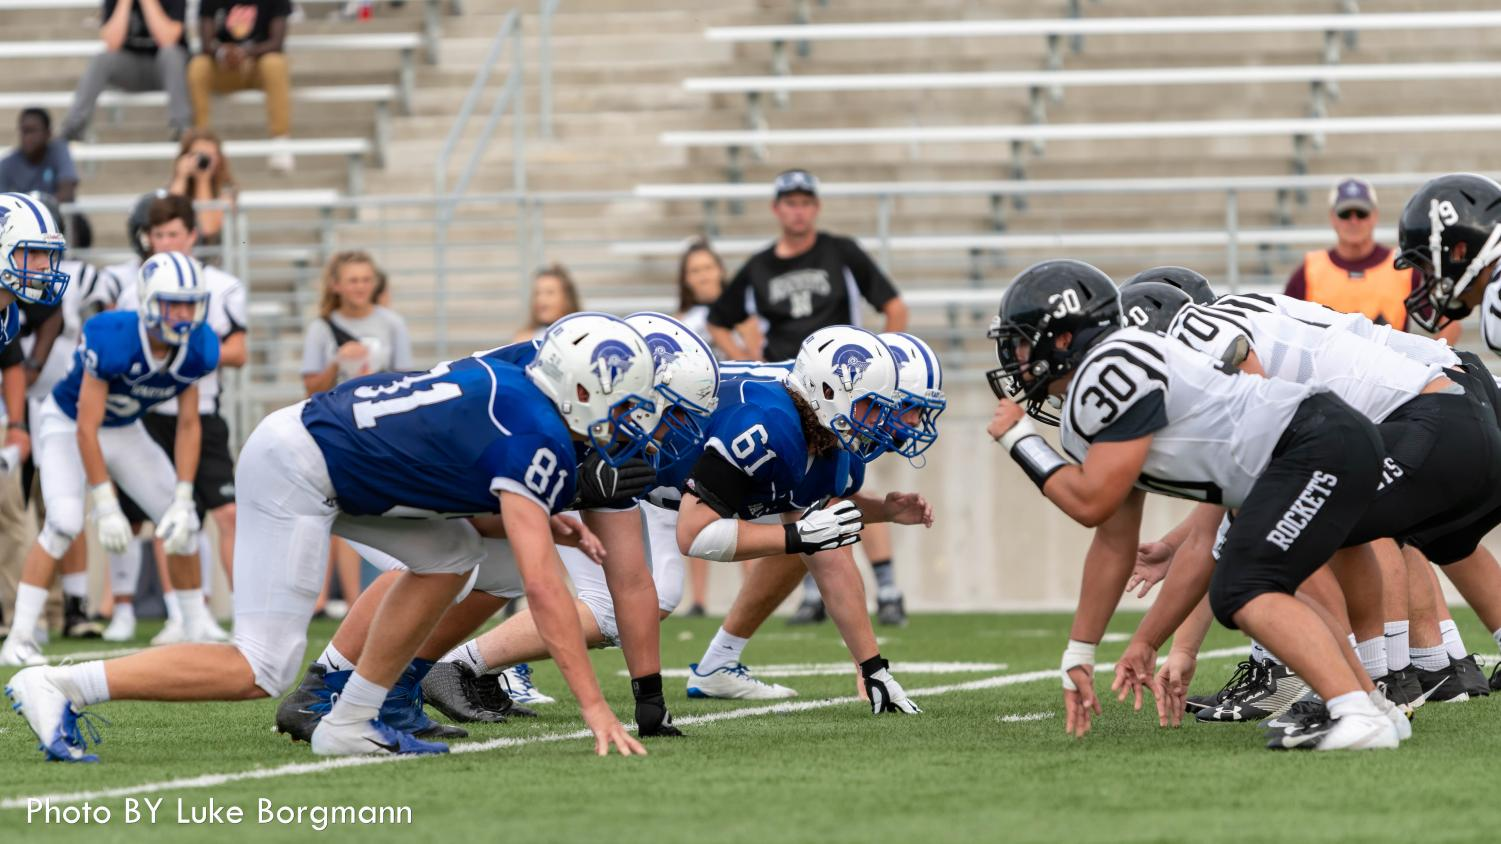 The East defense lines up against the Northeast offensive line on Friday, August 31st at Seacrest Field.  East won the game 28-7.